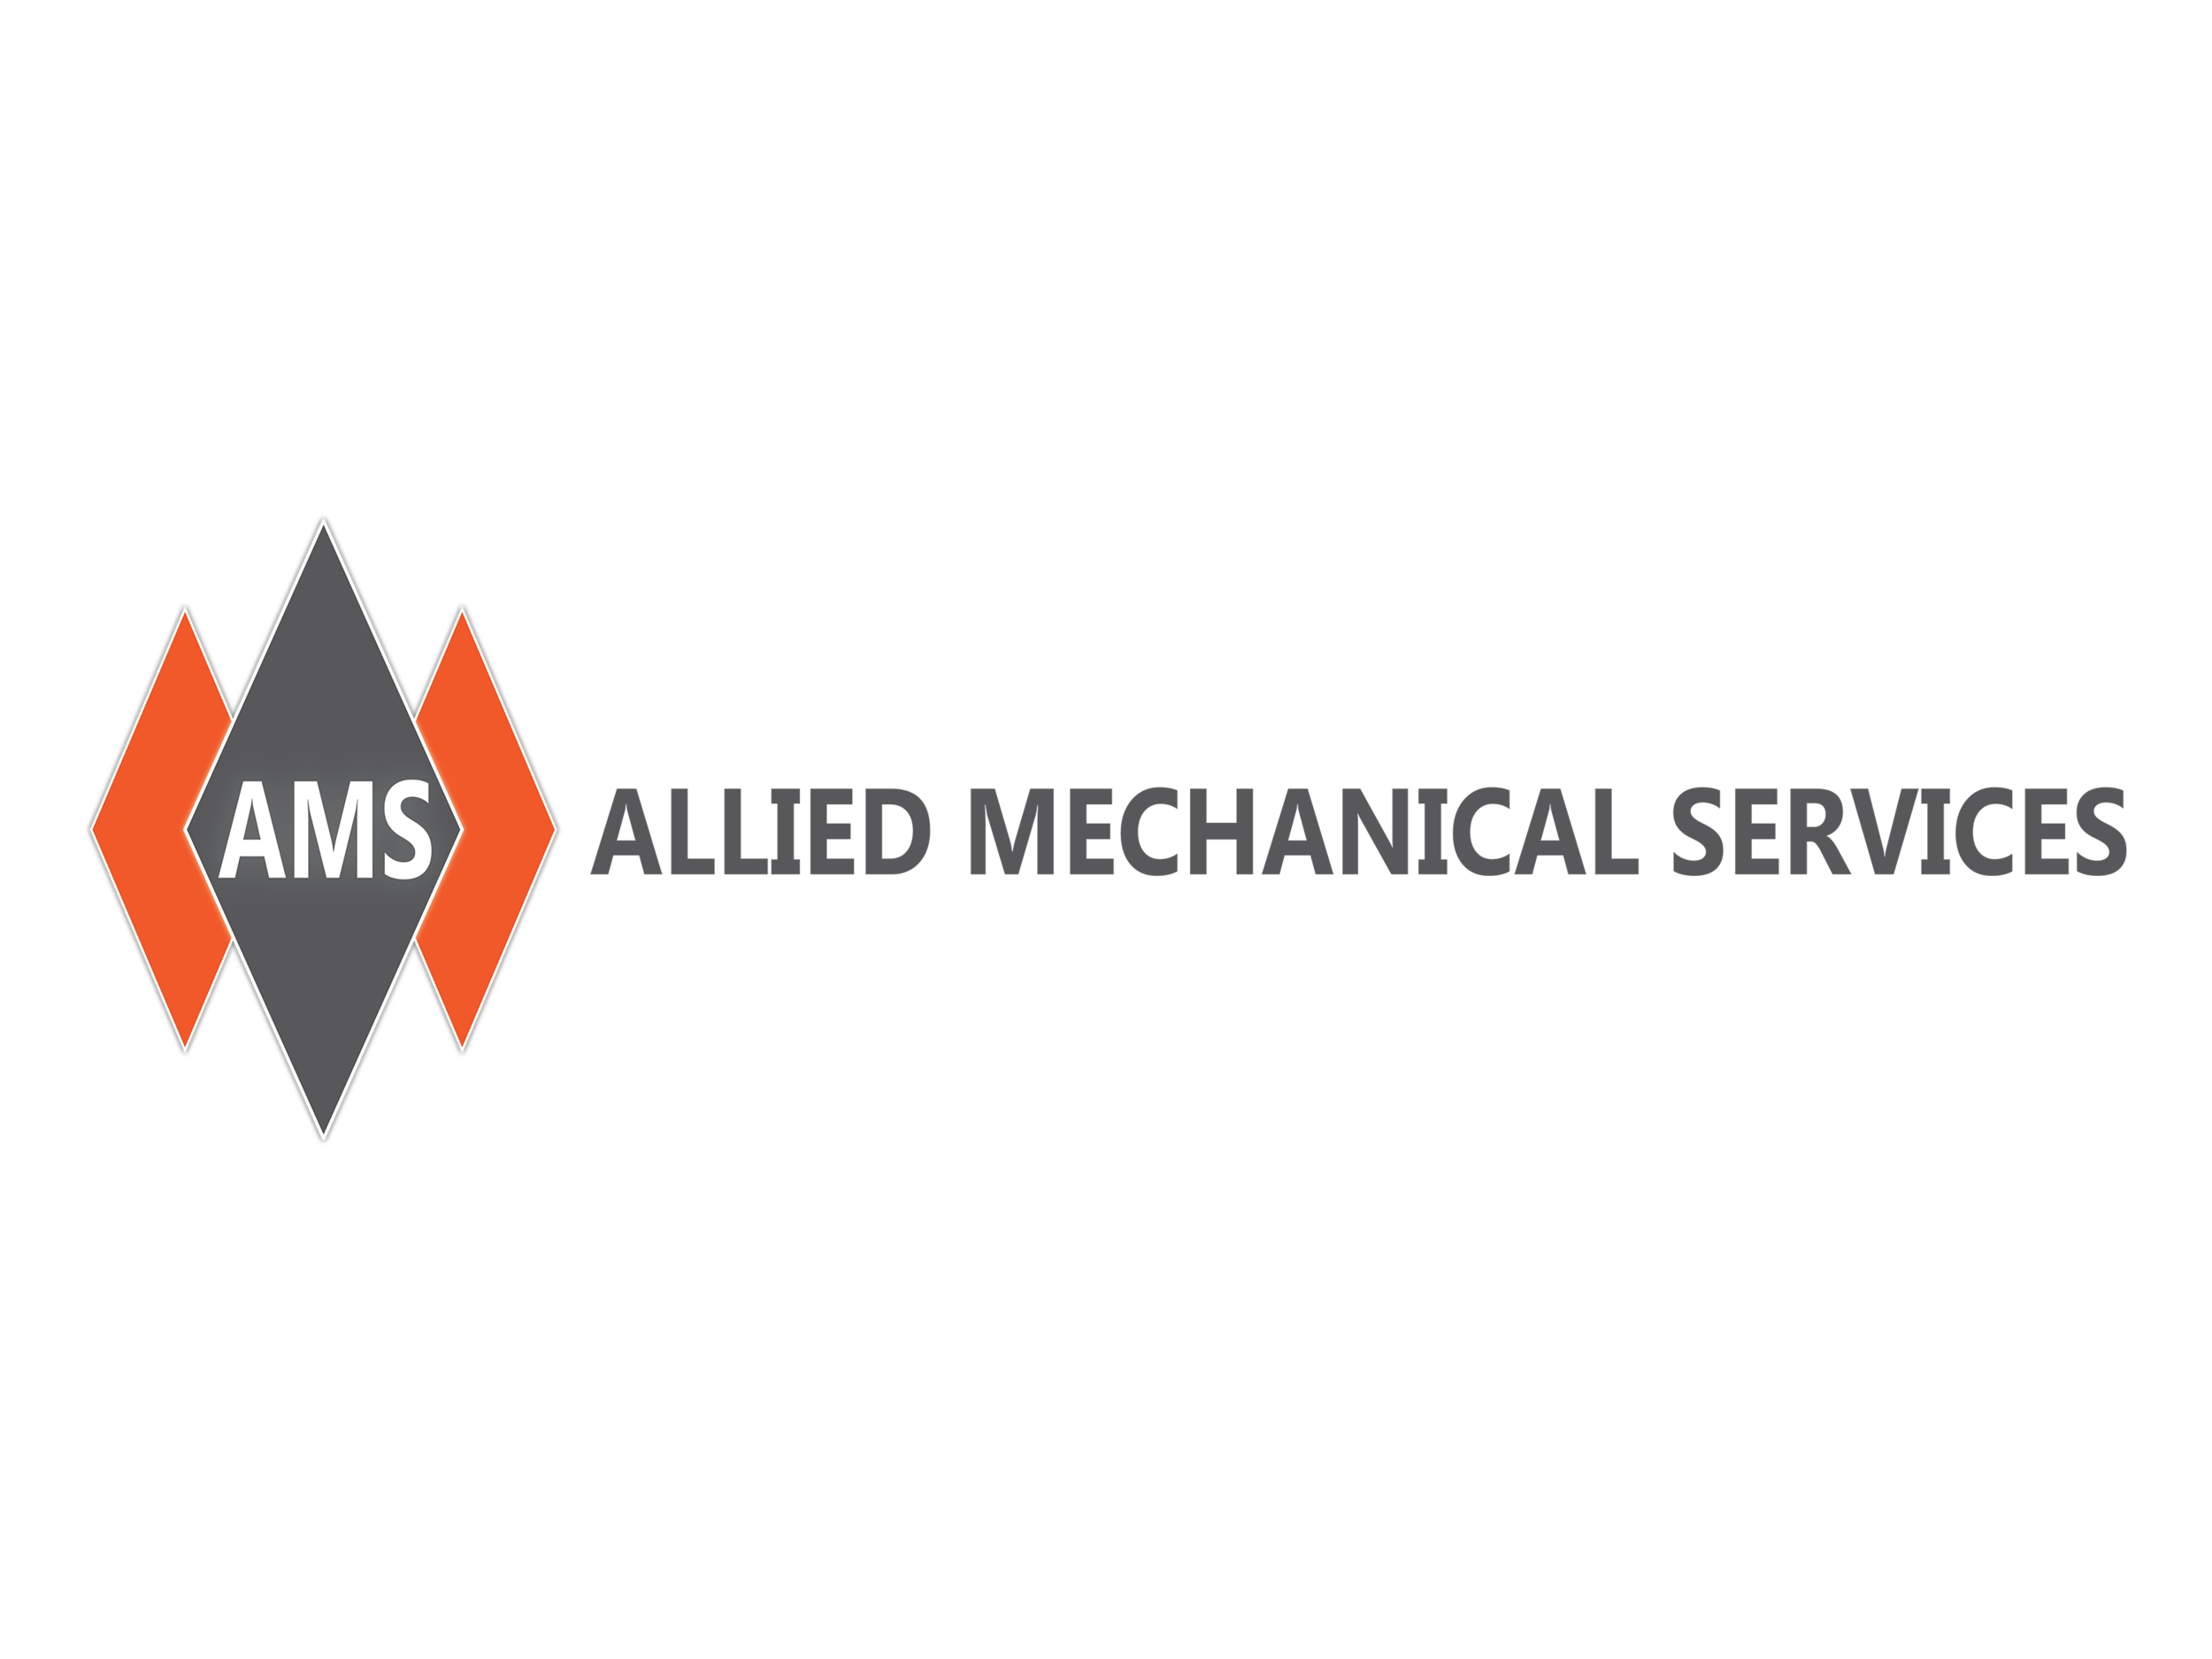 Allied Mechanical Services Logo 2018.png